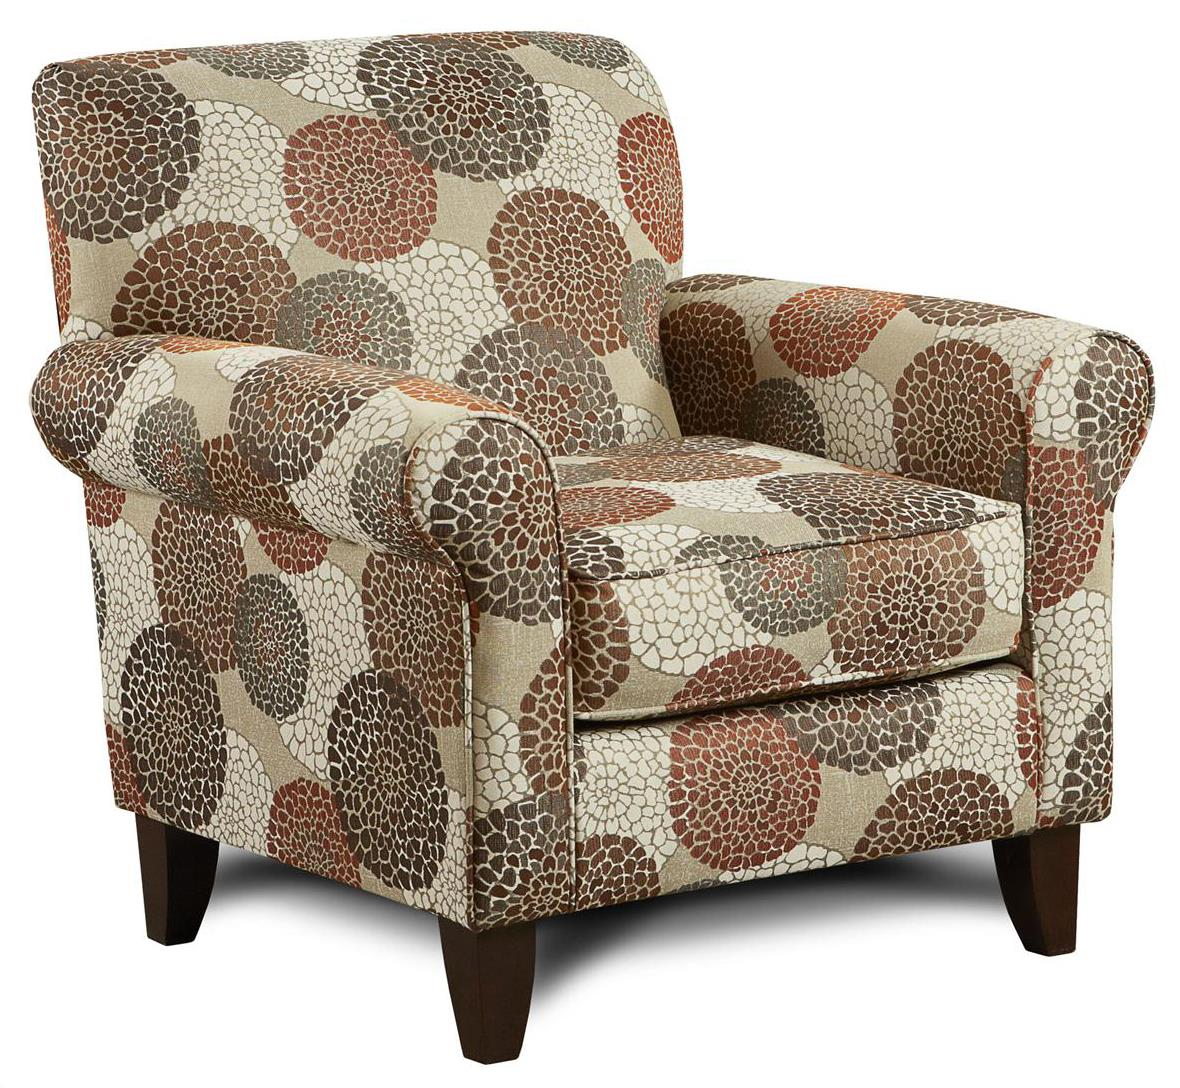 Fusion Furniture 502 Accent Chair - Item Number: 502Crysanthmum Umber